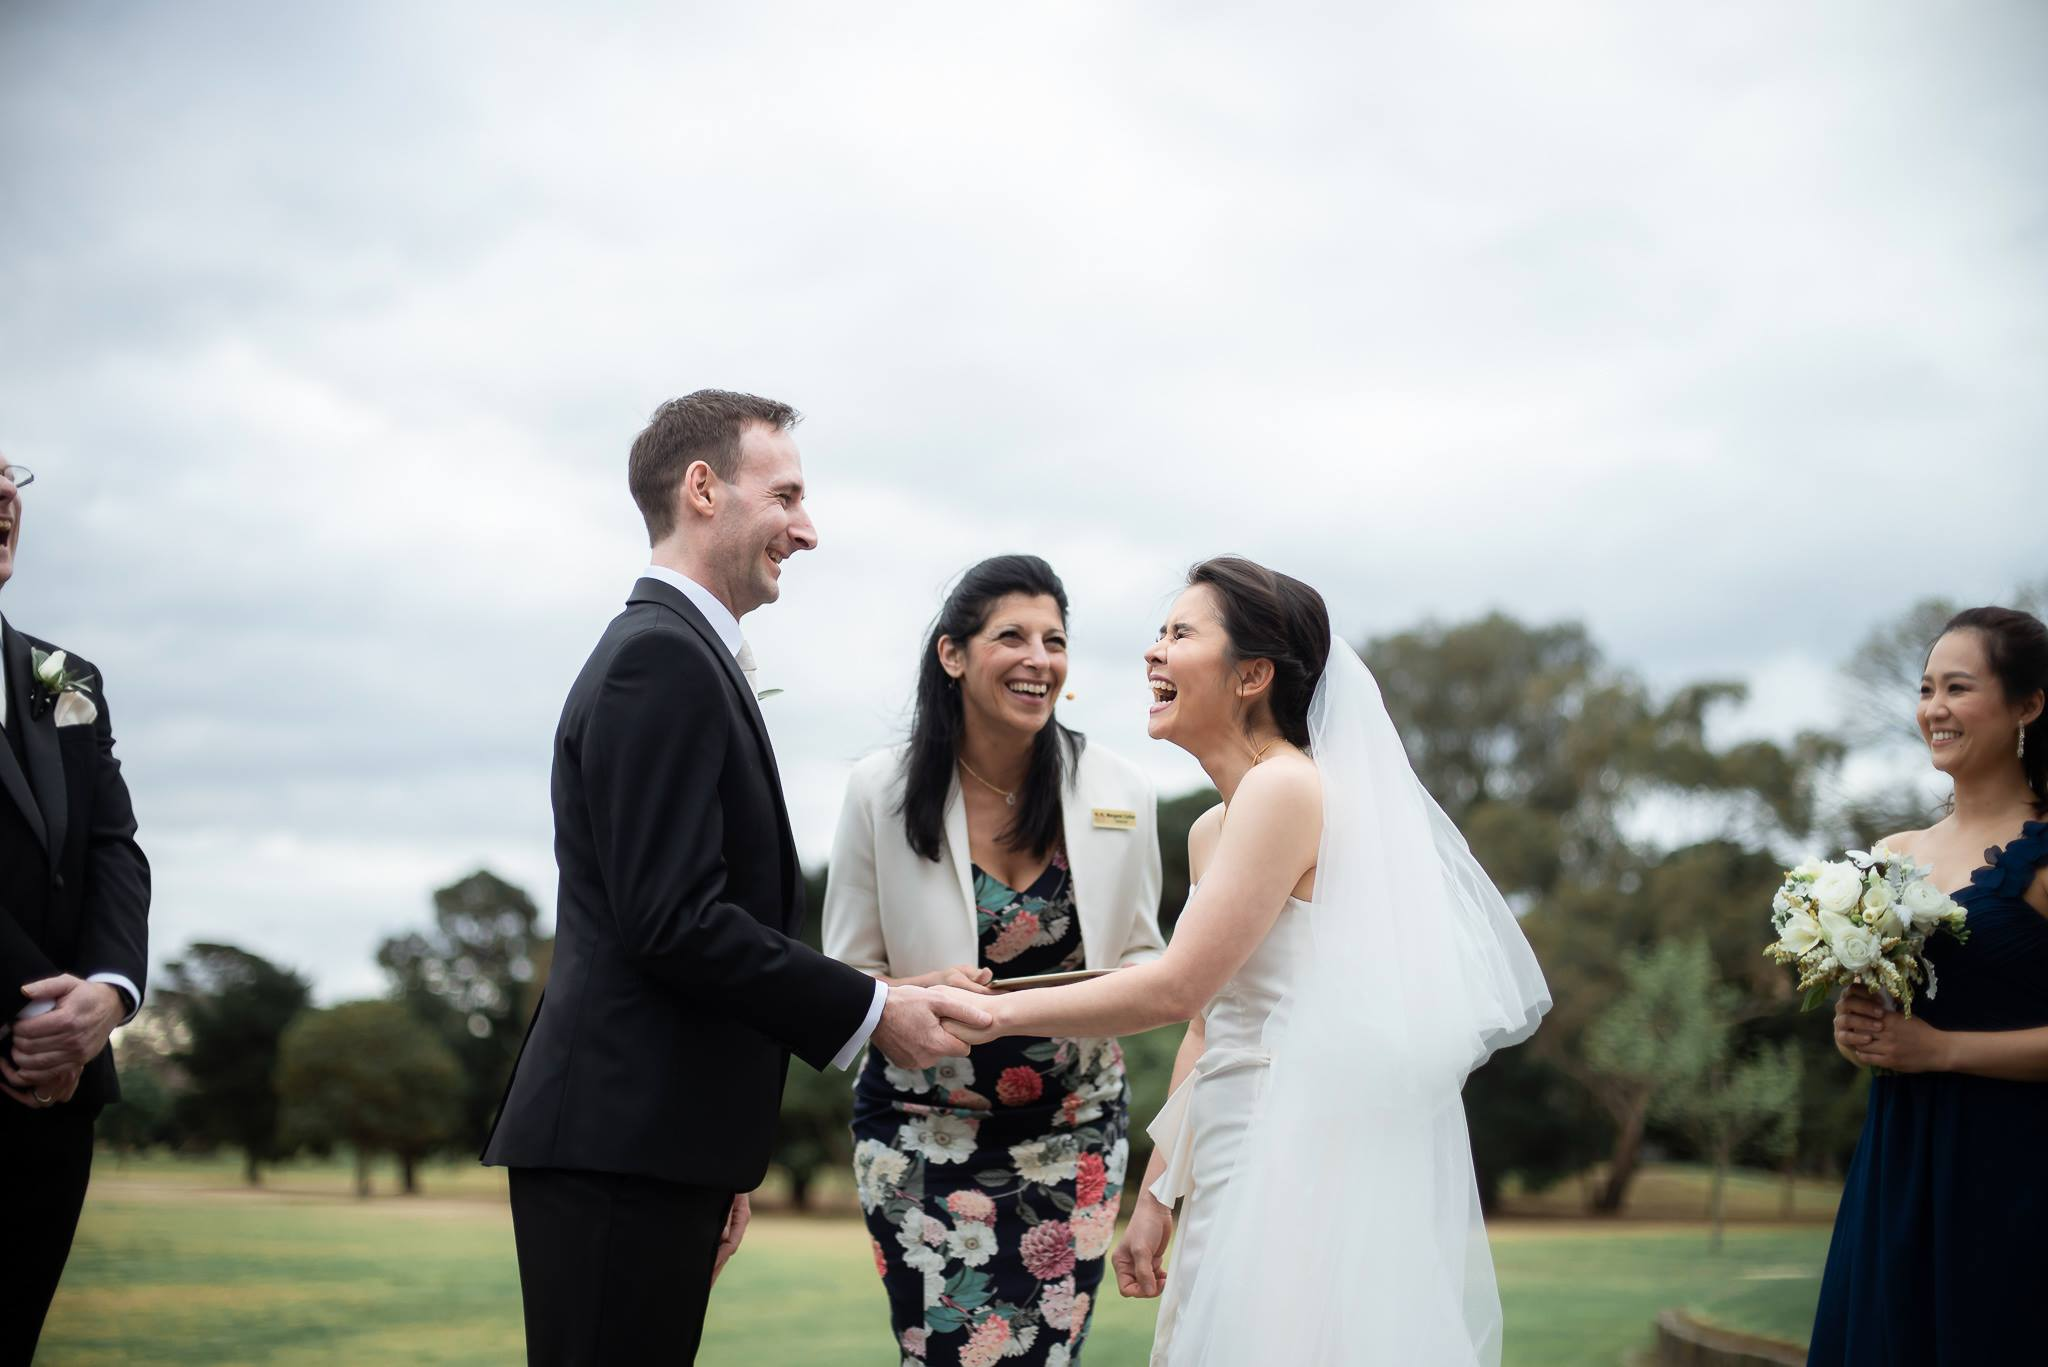 Melbourne Marriage Celebrant